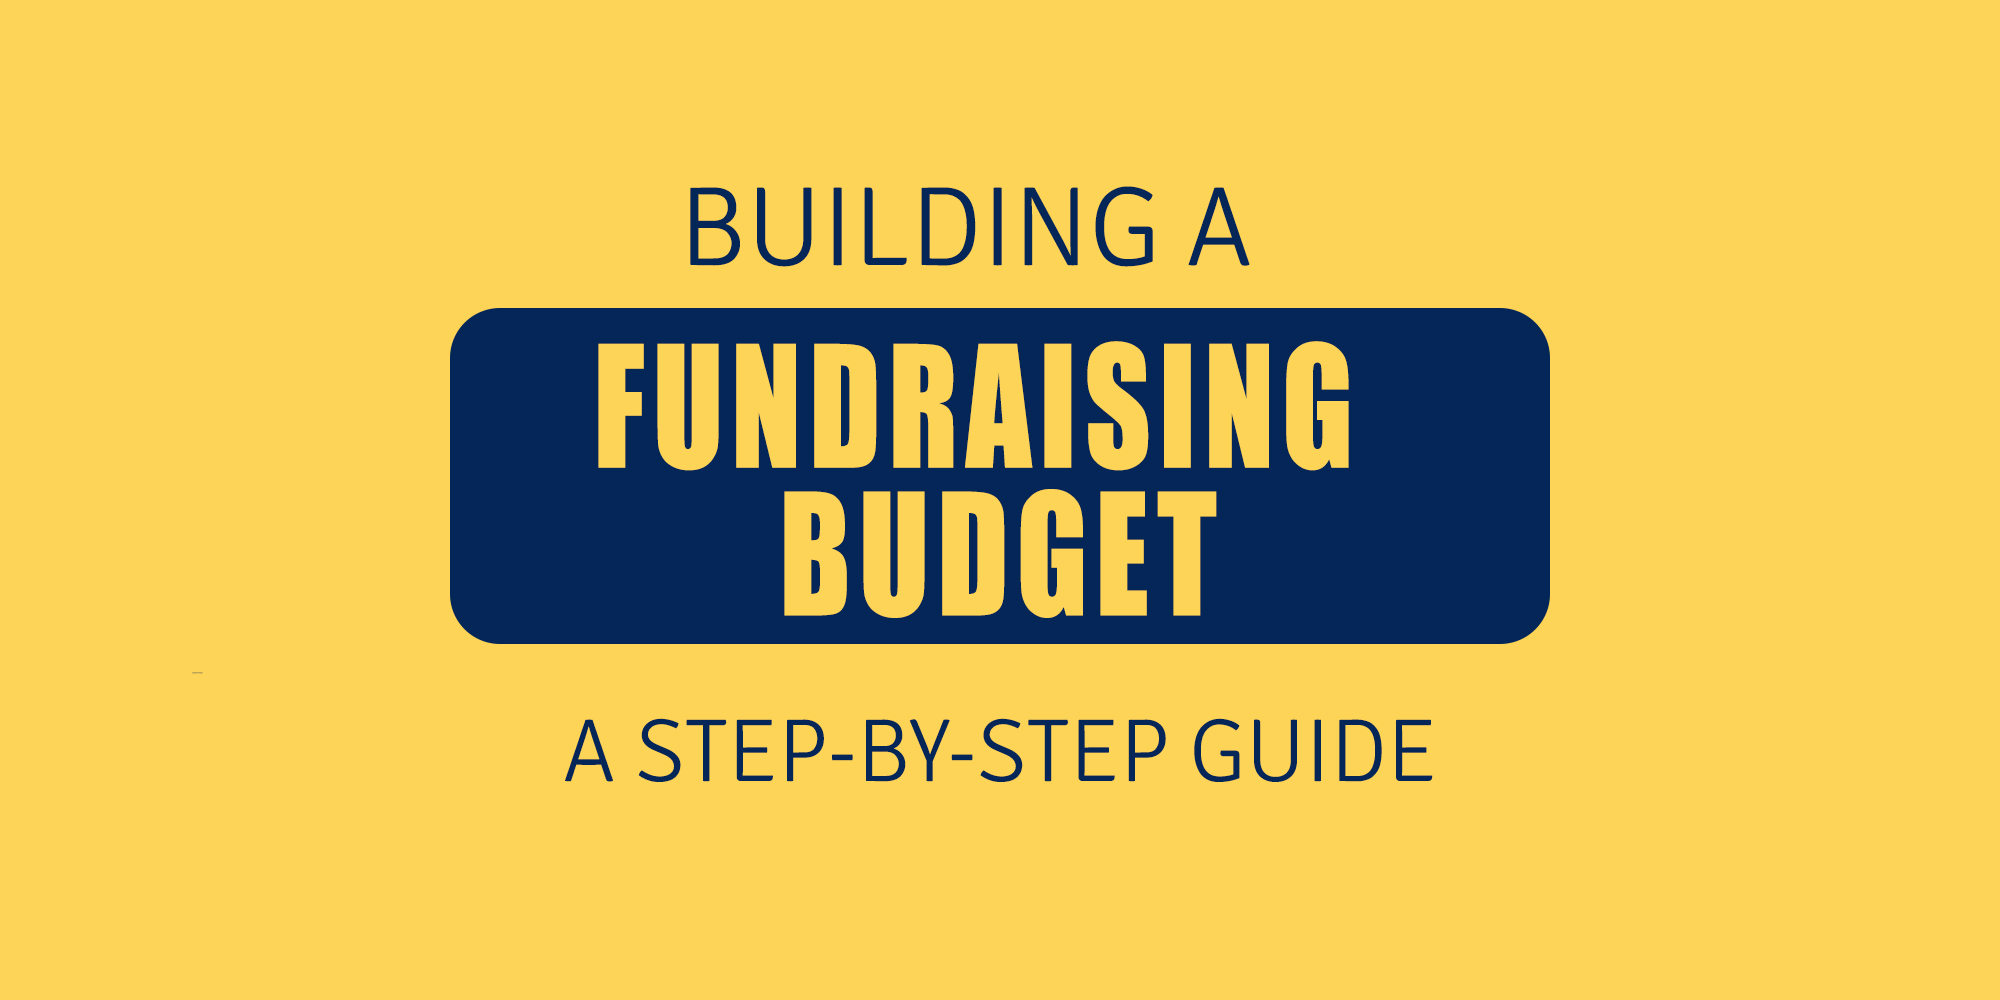 A Step-by-Step Guide to Building a Fundraising Budget